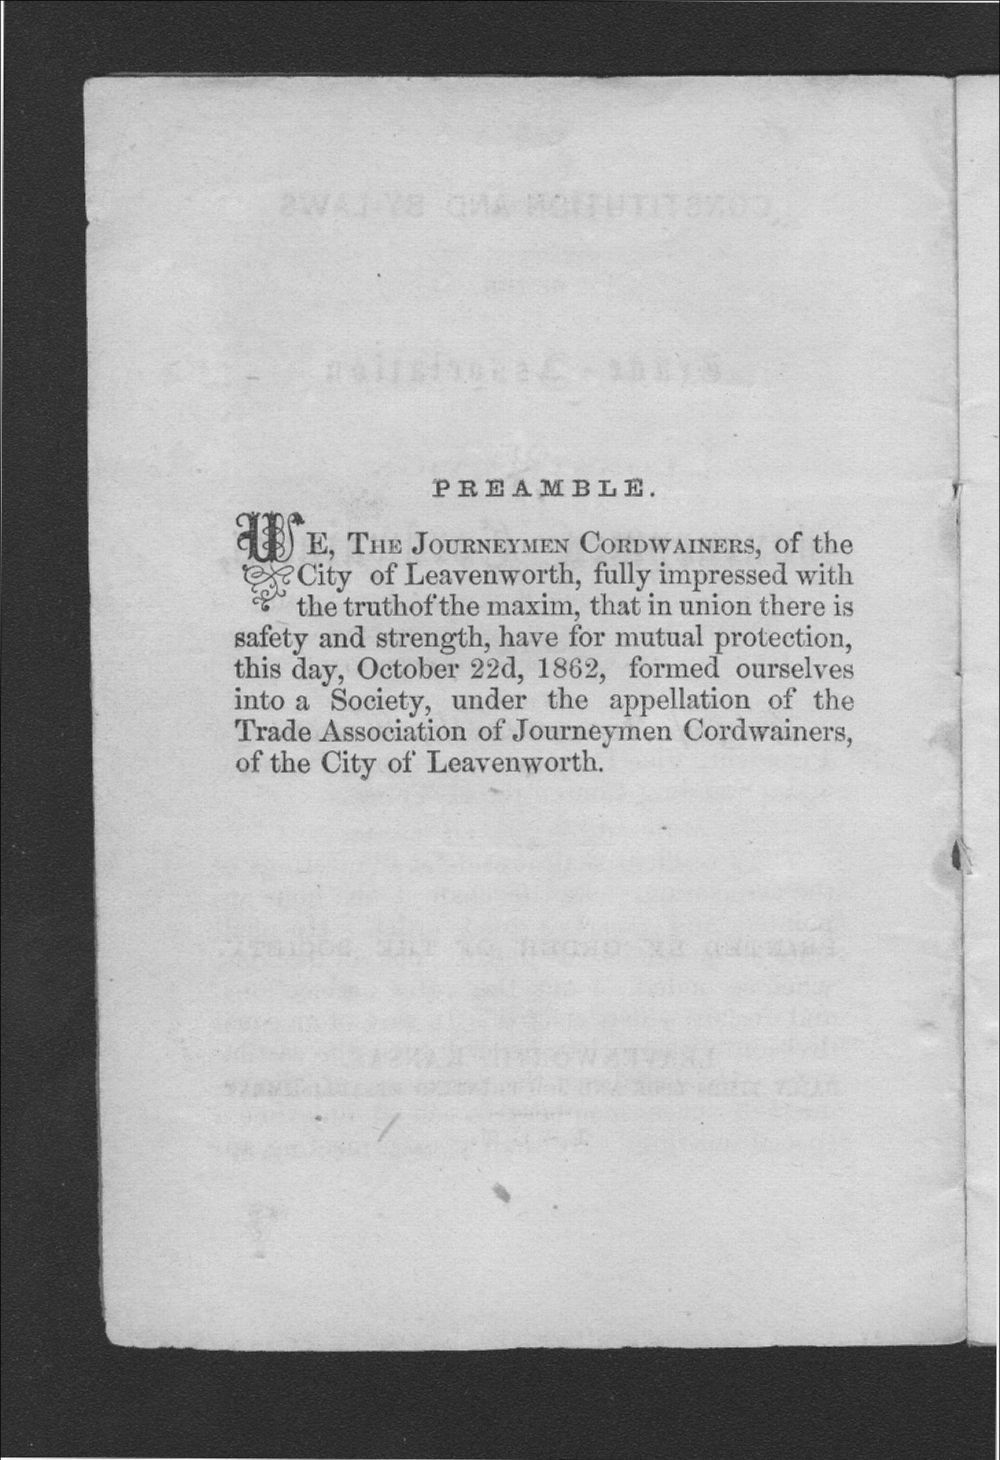 Constitution and By-Laws of the Trade Association of Journeymen Cordwainers, of the City of Leavenworth, Kansas - Preamble